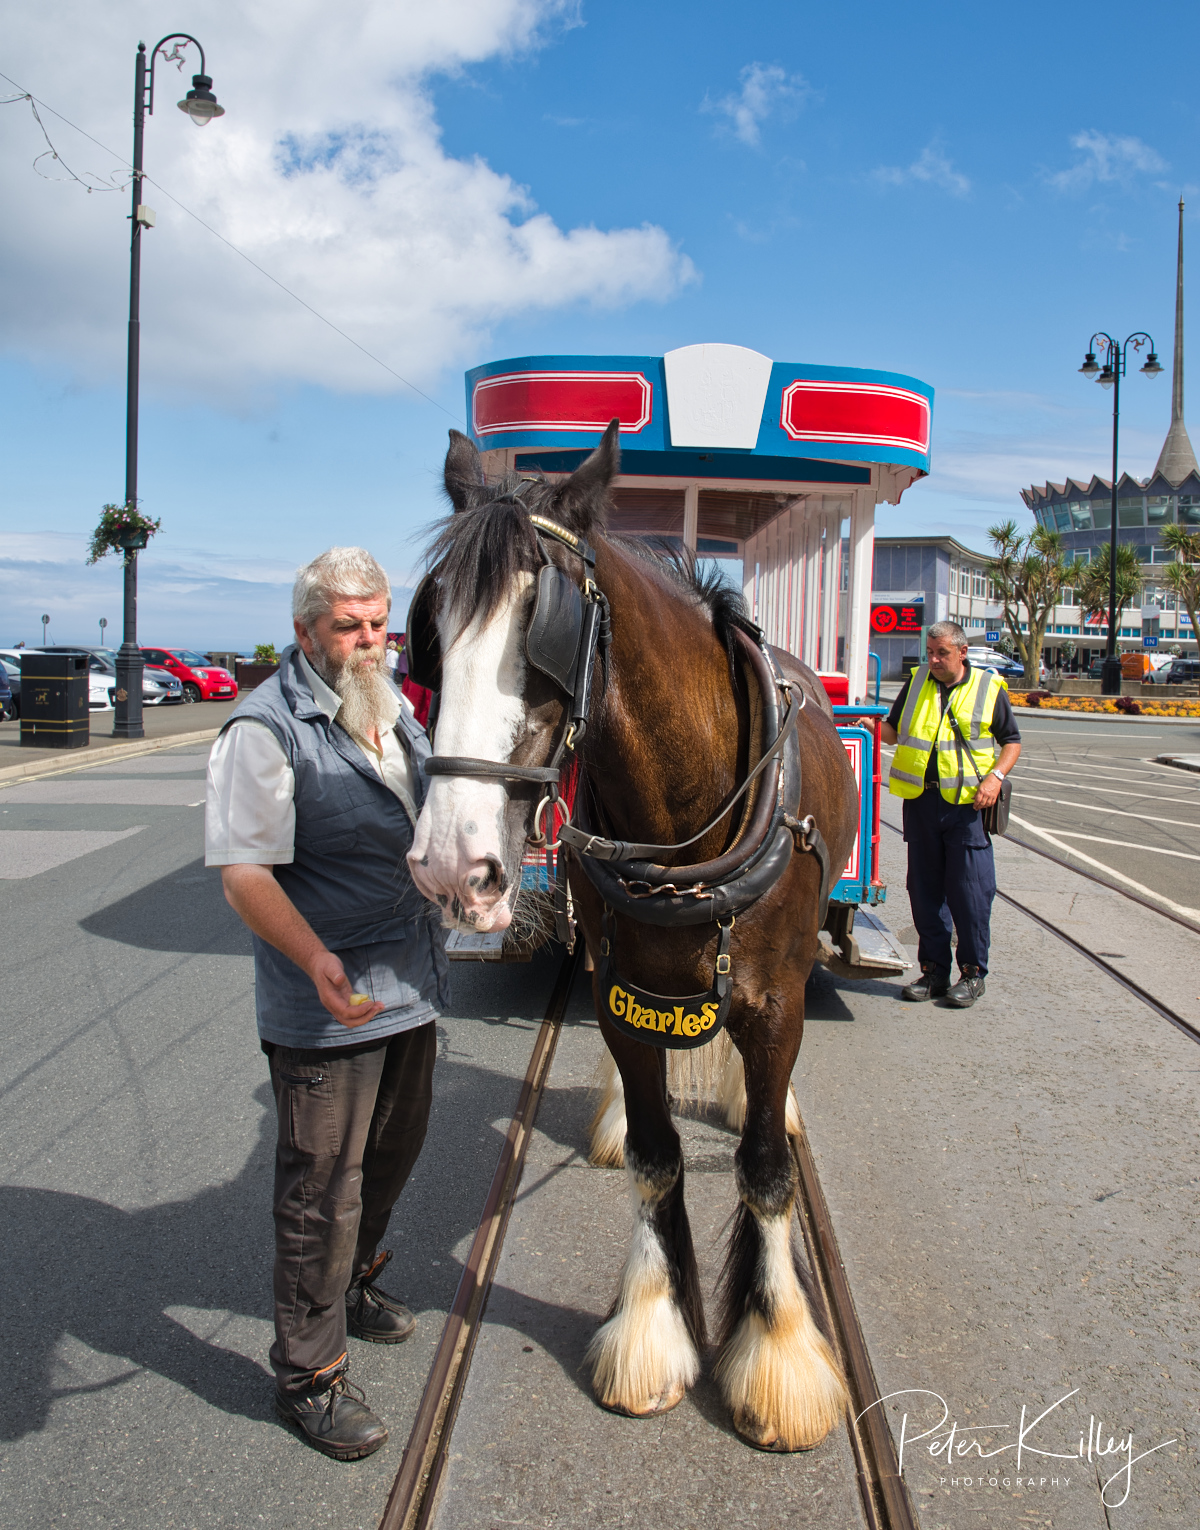 Horse Tram Charles - © Peter Killey - www.manxscenes.com